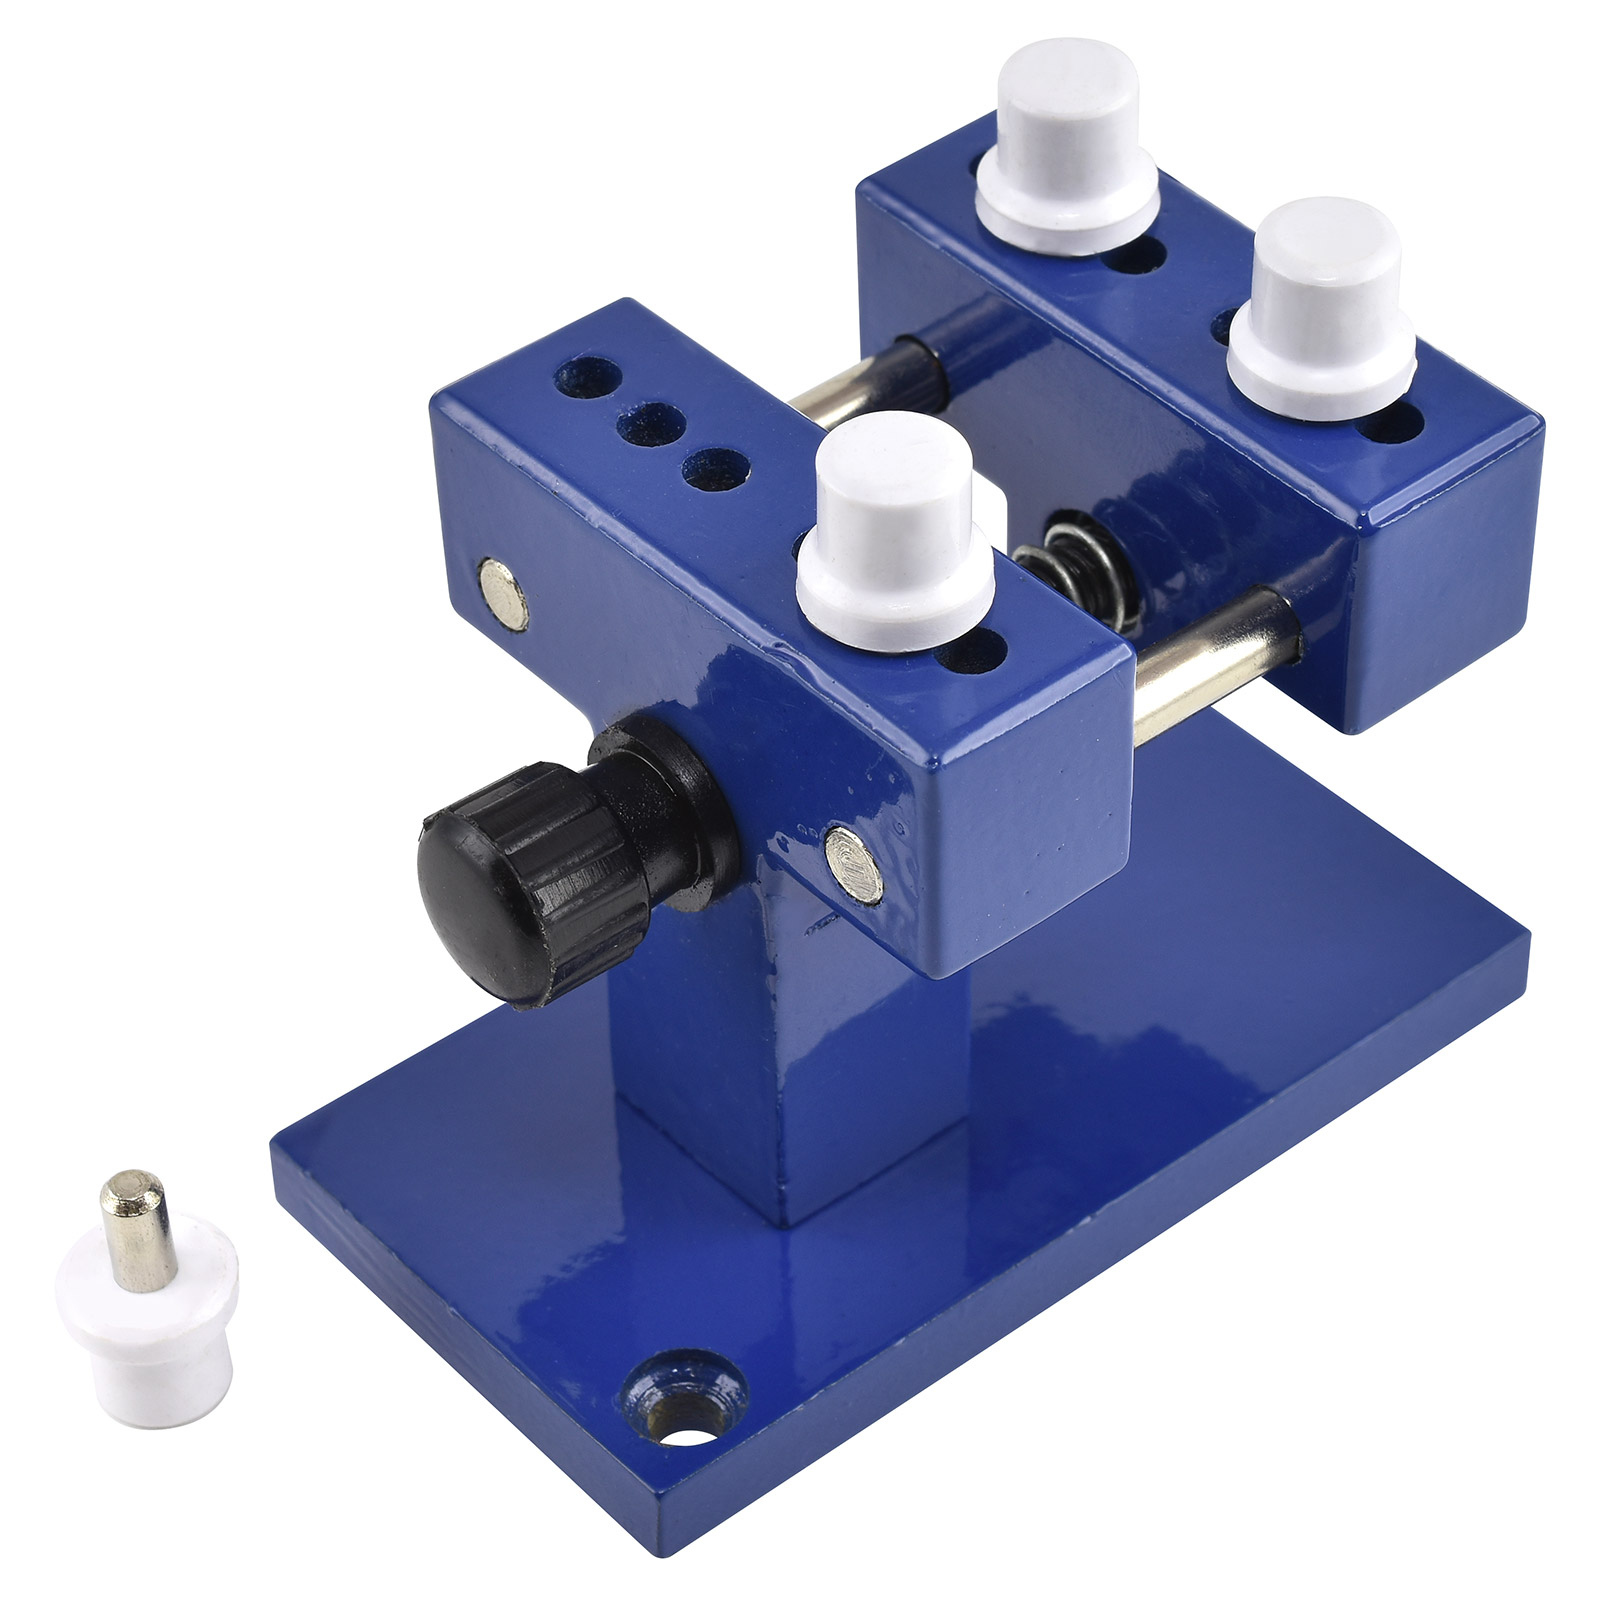 Mini Vise with Base